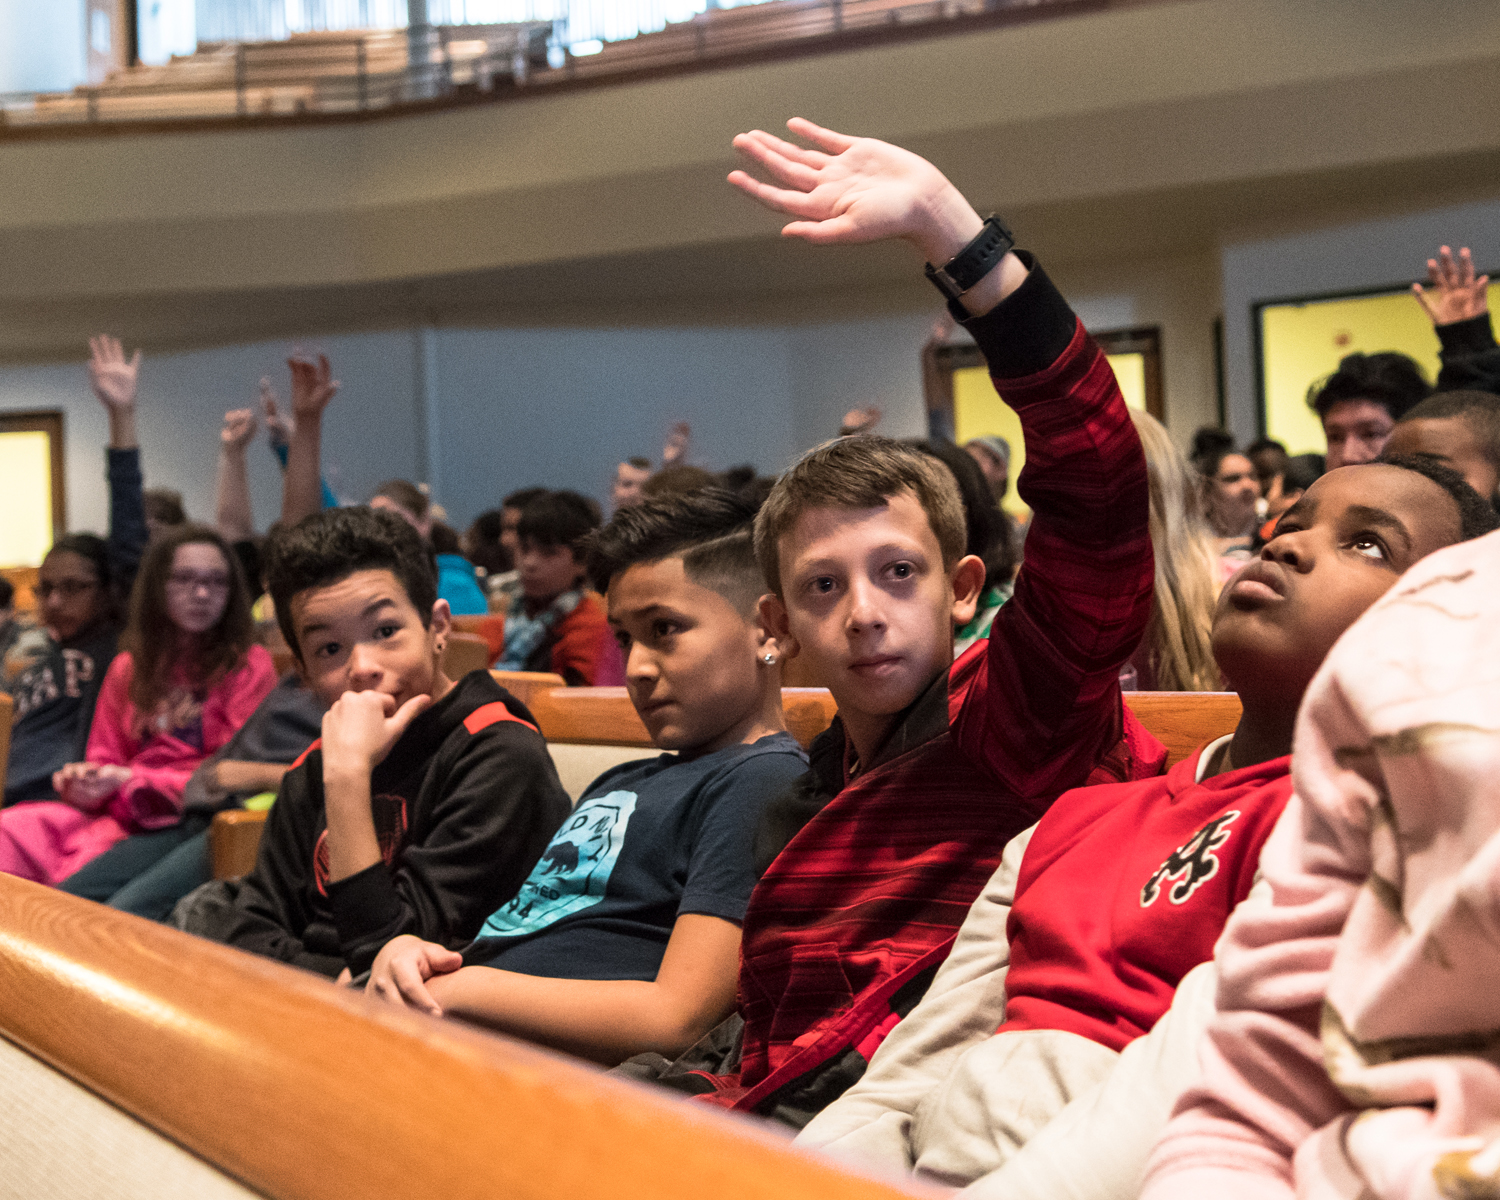 Fifth-grader John Rodgers, an aspiring trombone player from Wadewitz Elementary School, raises his hand when brass instrument players are called on by the Racine Symphony Orchestra conductor Pasquale Laurino during the RSO's Concert for Fifth Graders on Tuesday, March 14, at Grace Church in Caledonia